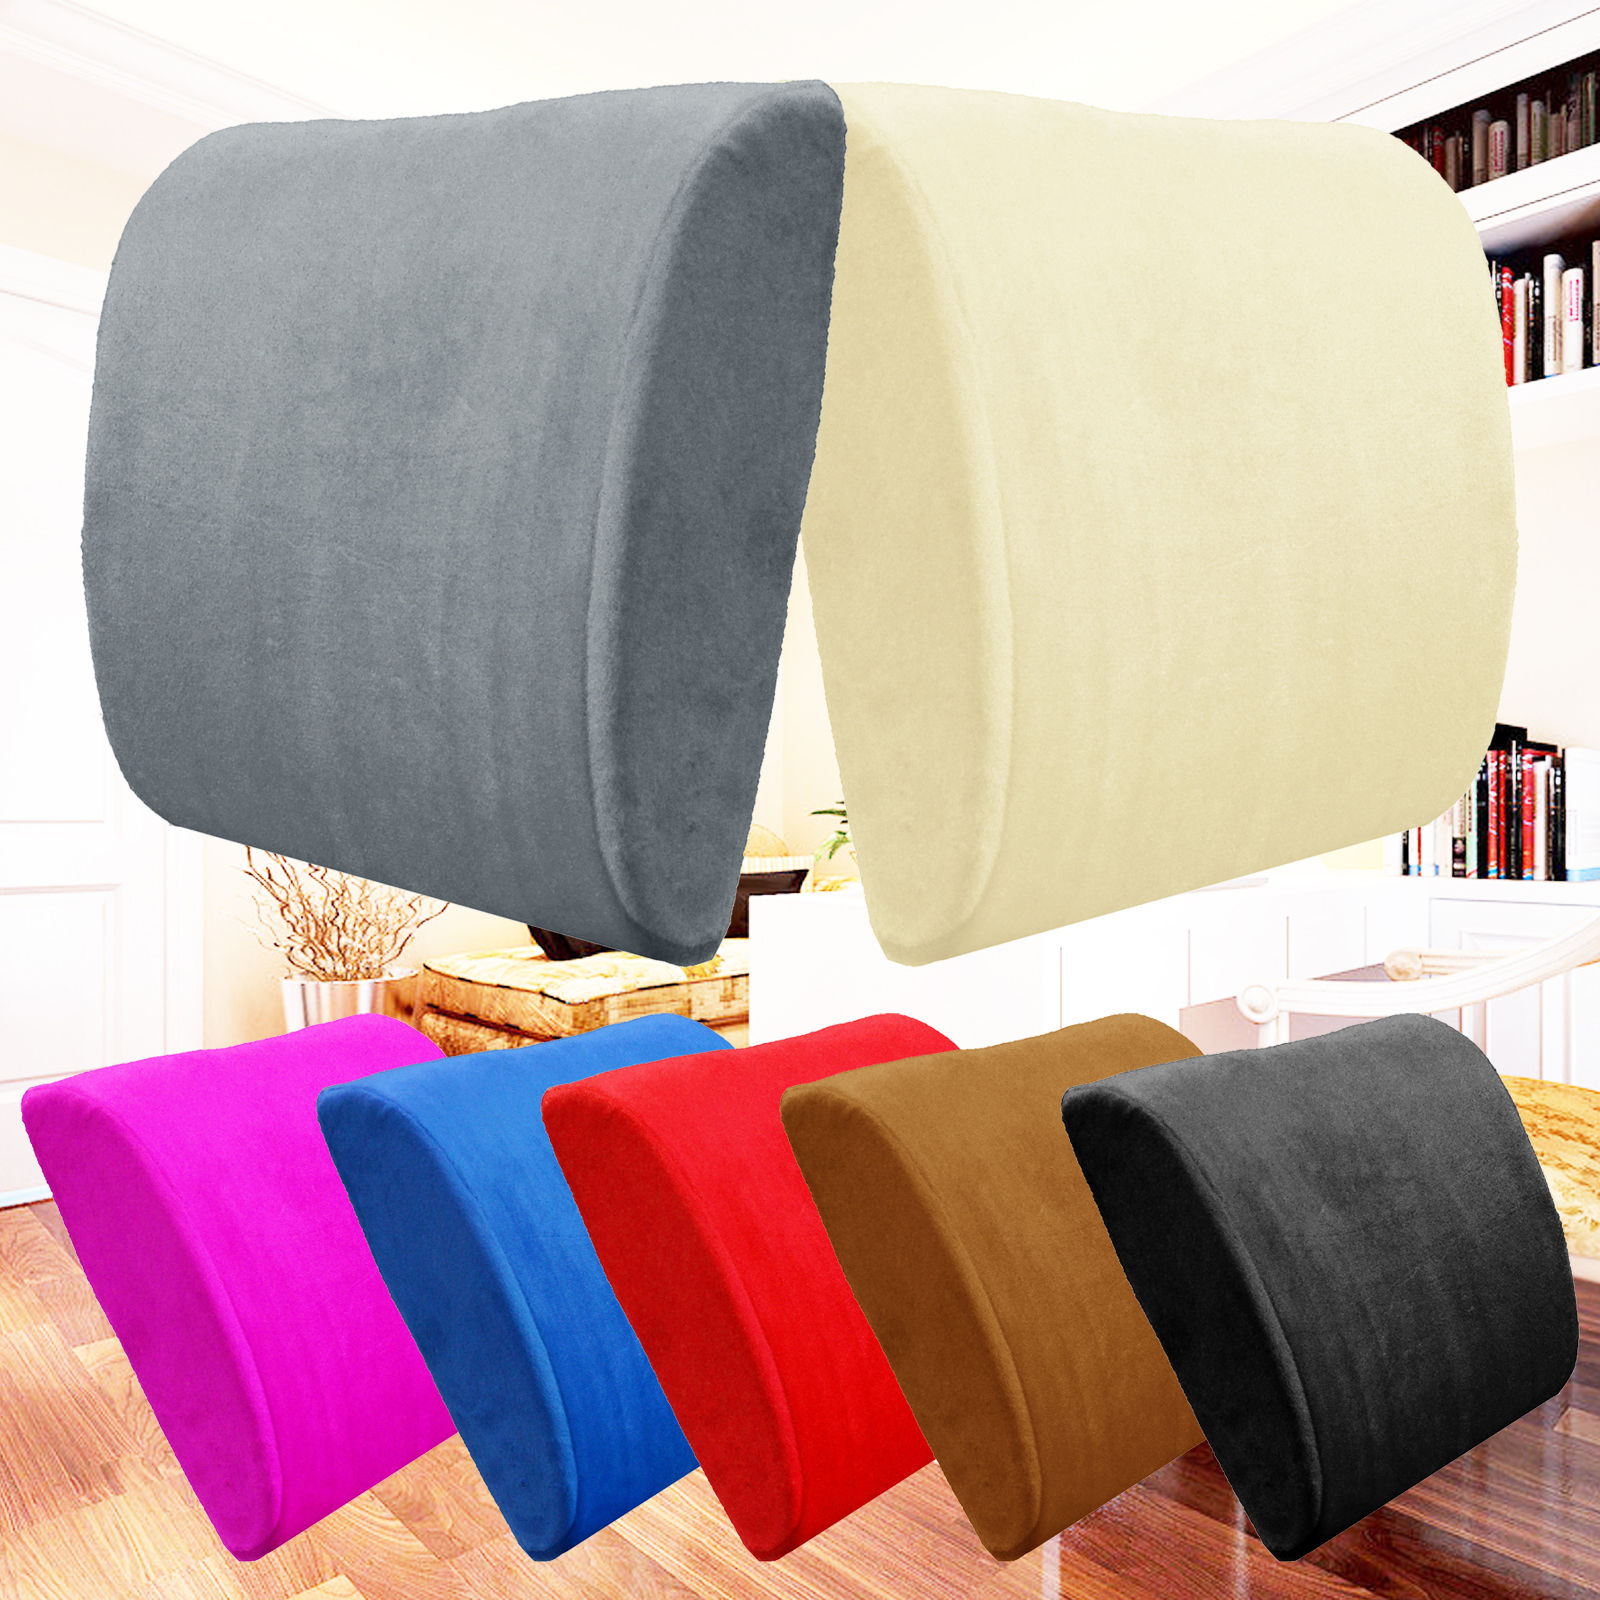 office chair cushion stool hong kong cushions memory foam lumbar back support pillow sciatica pain relief seat black and more